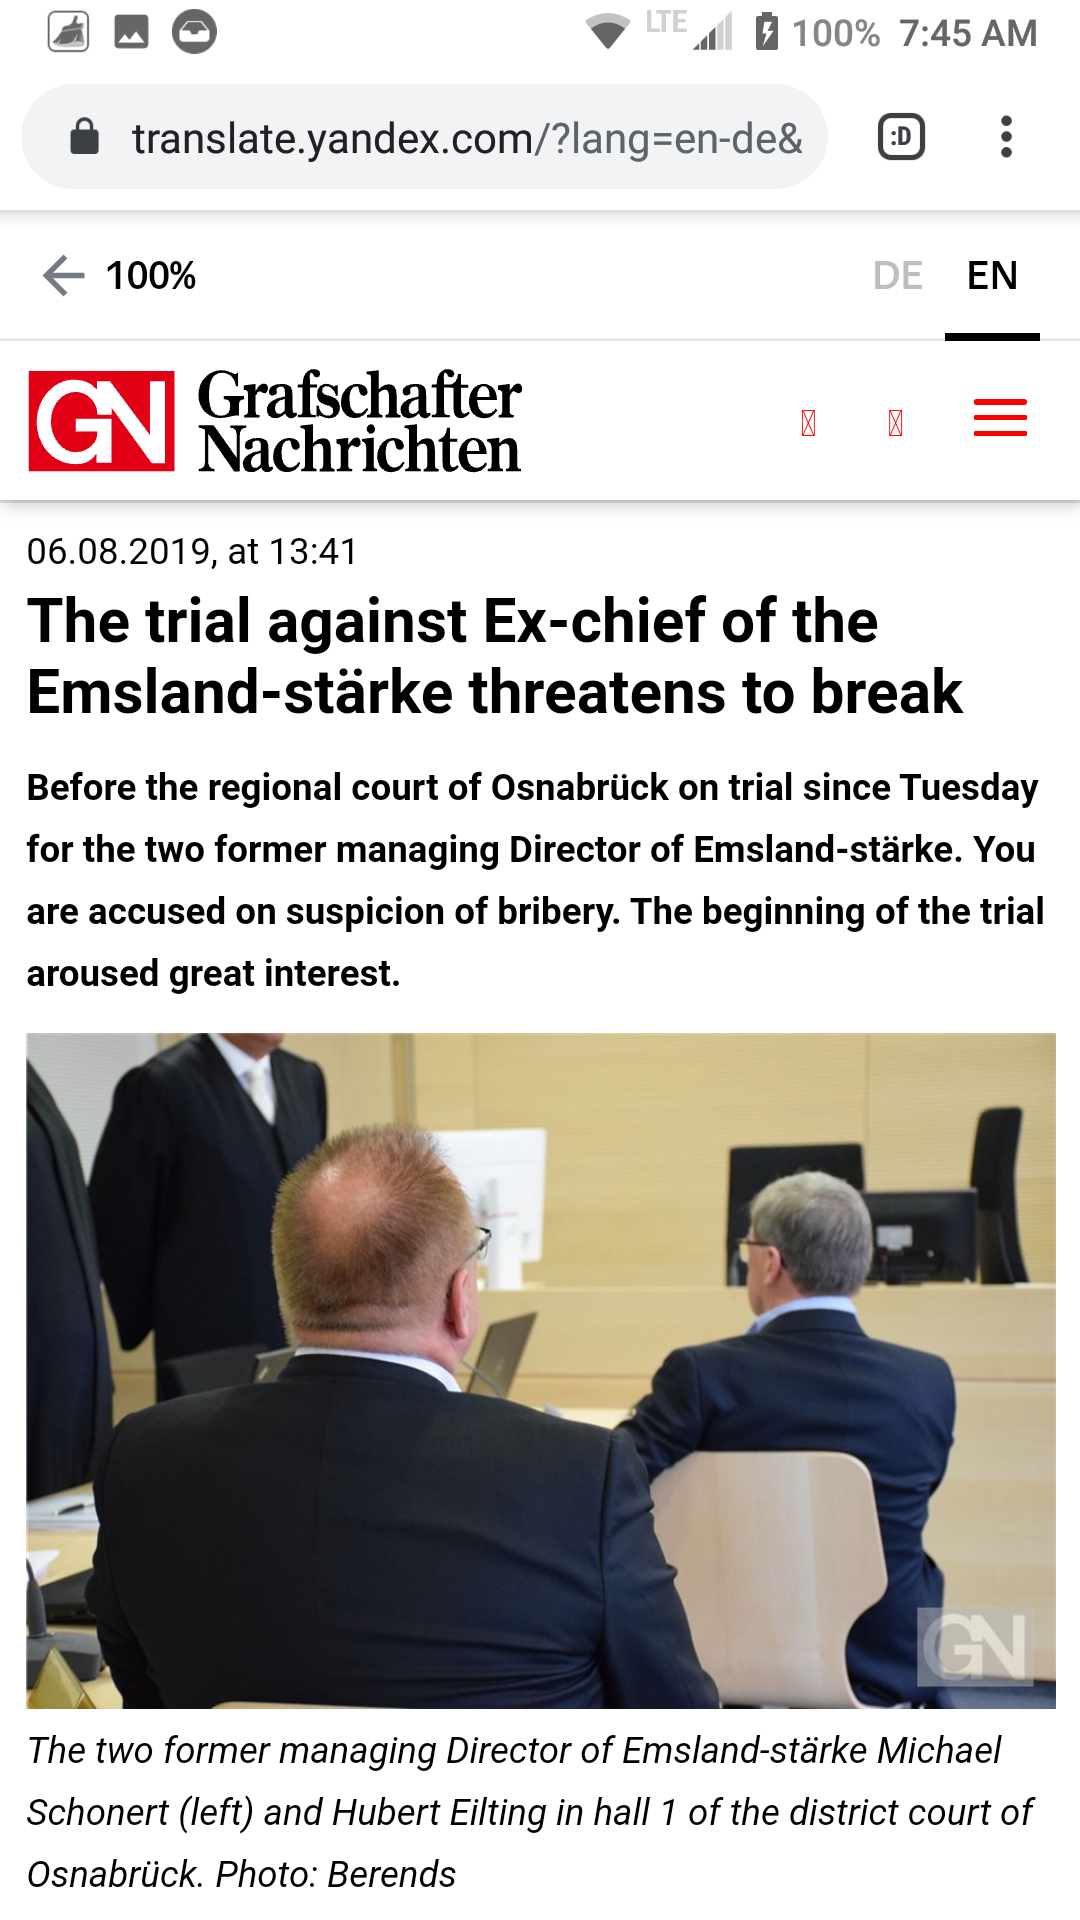 Screenshot and translation from the German press with CPI Director Michael Schoenert on trial for allegations of corruption and bribery.